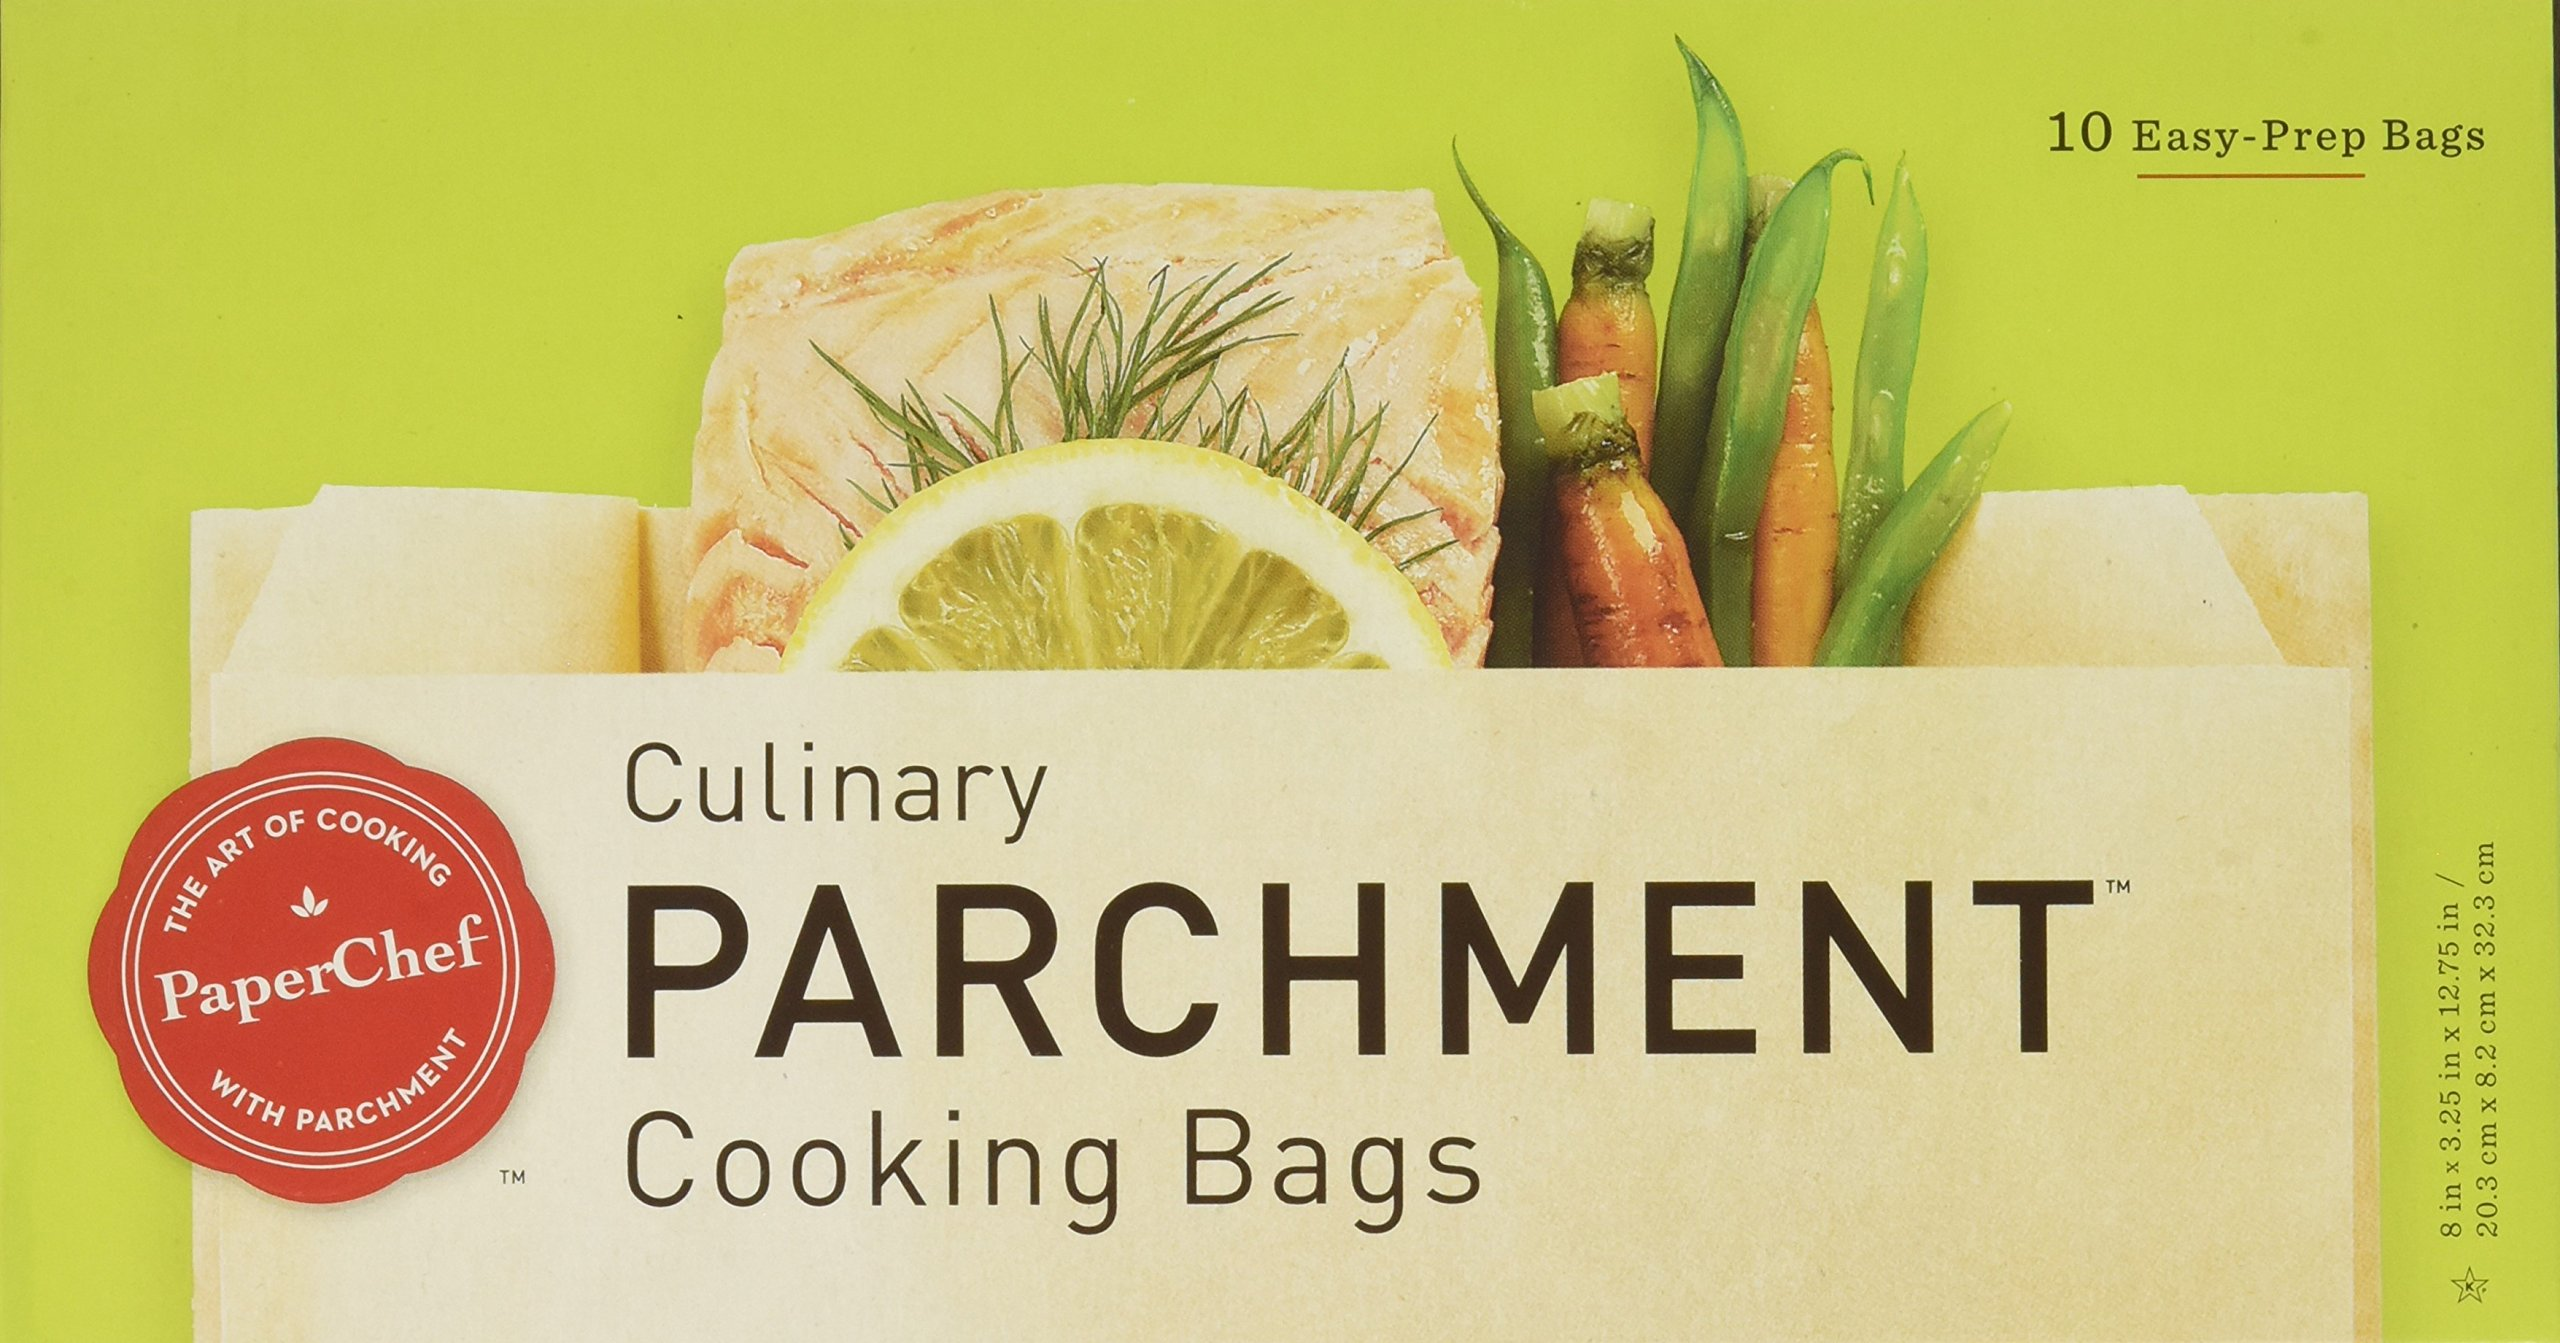 Paper Chef Parchment Cooking Bags, 10 Count Box (Pack of 3) by PaperChef